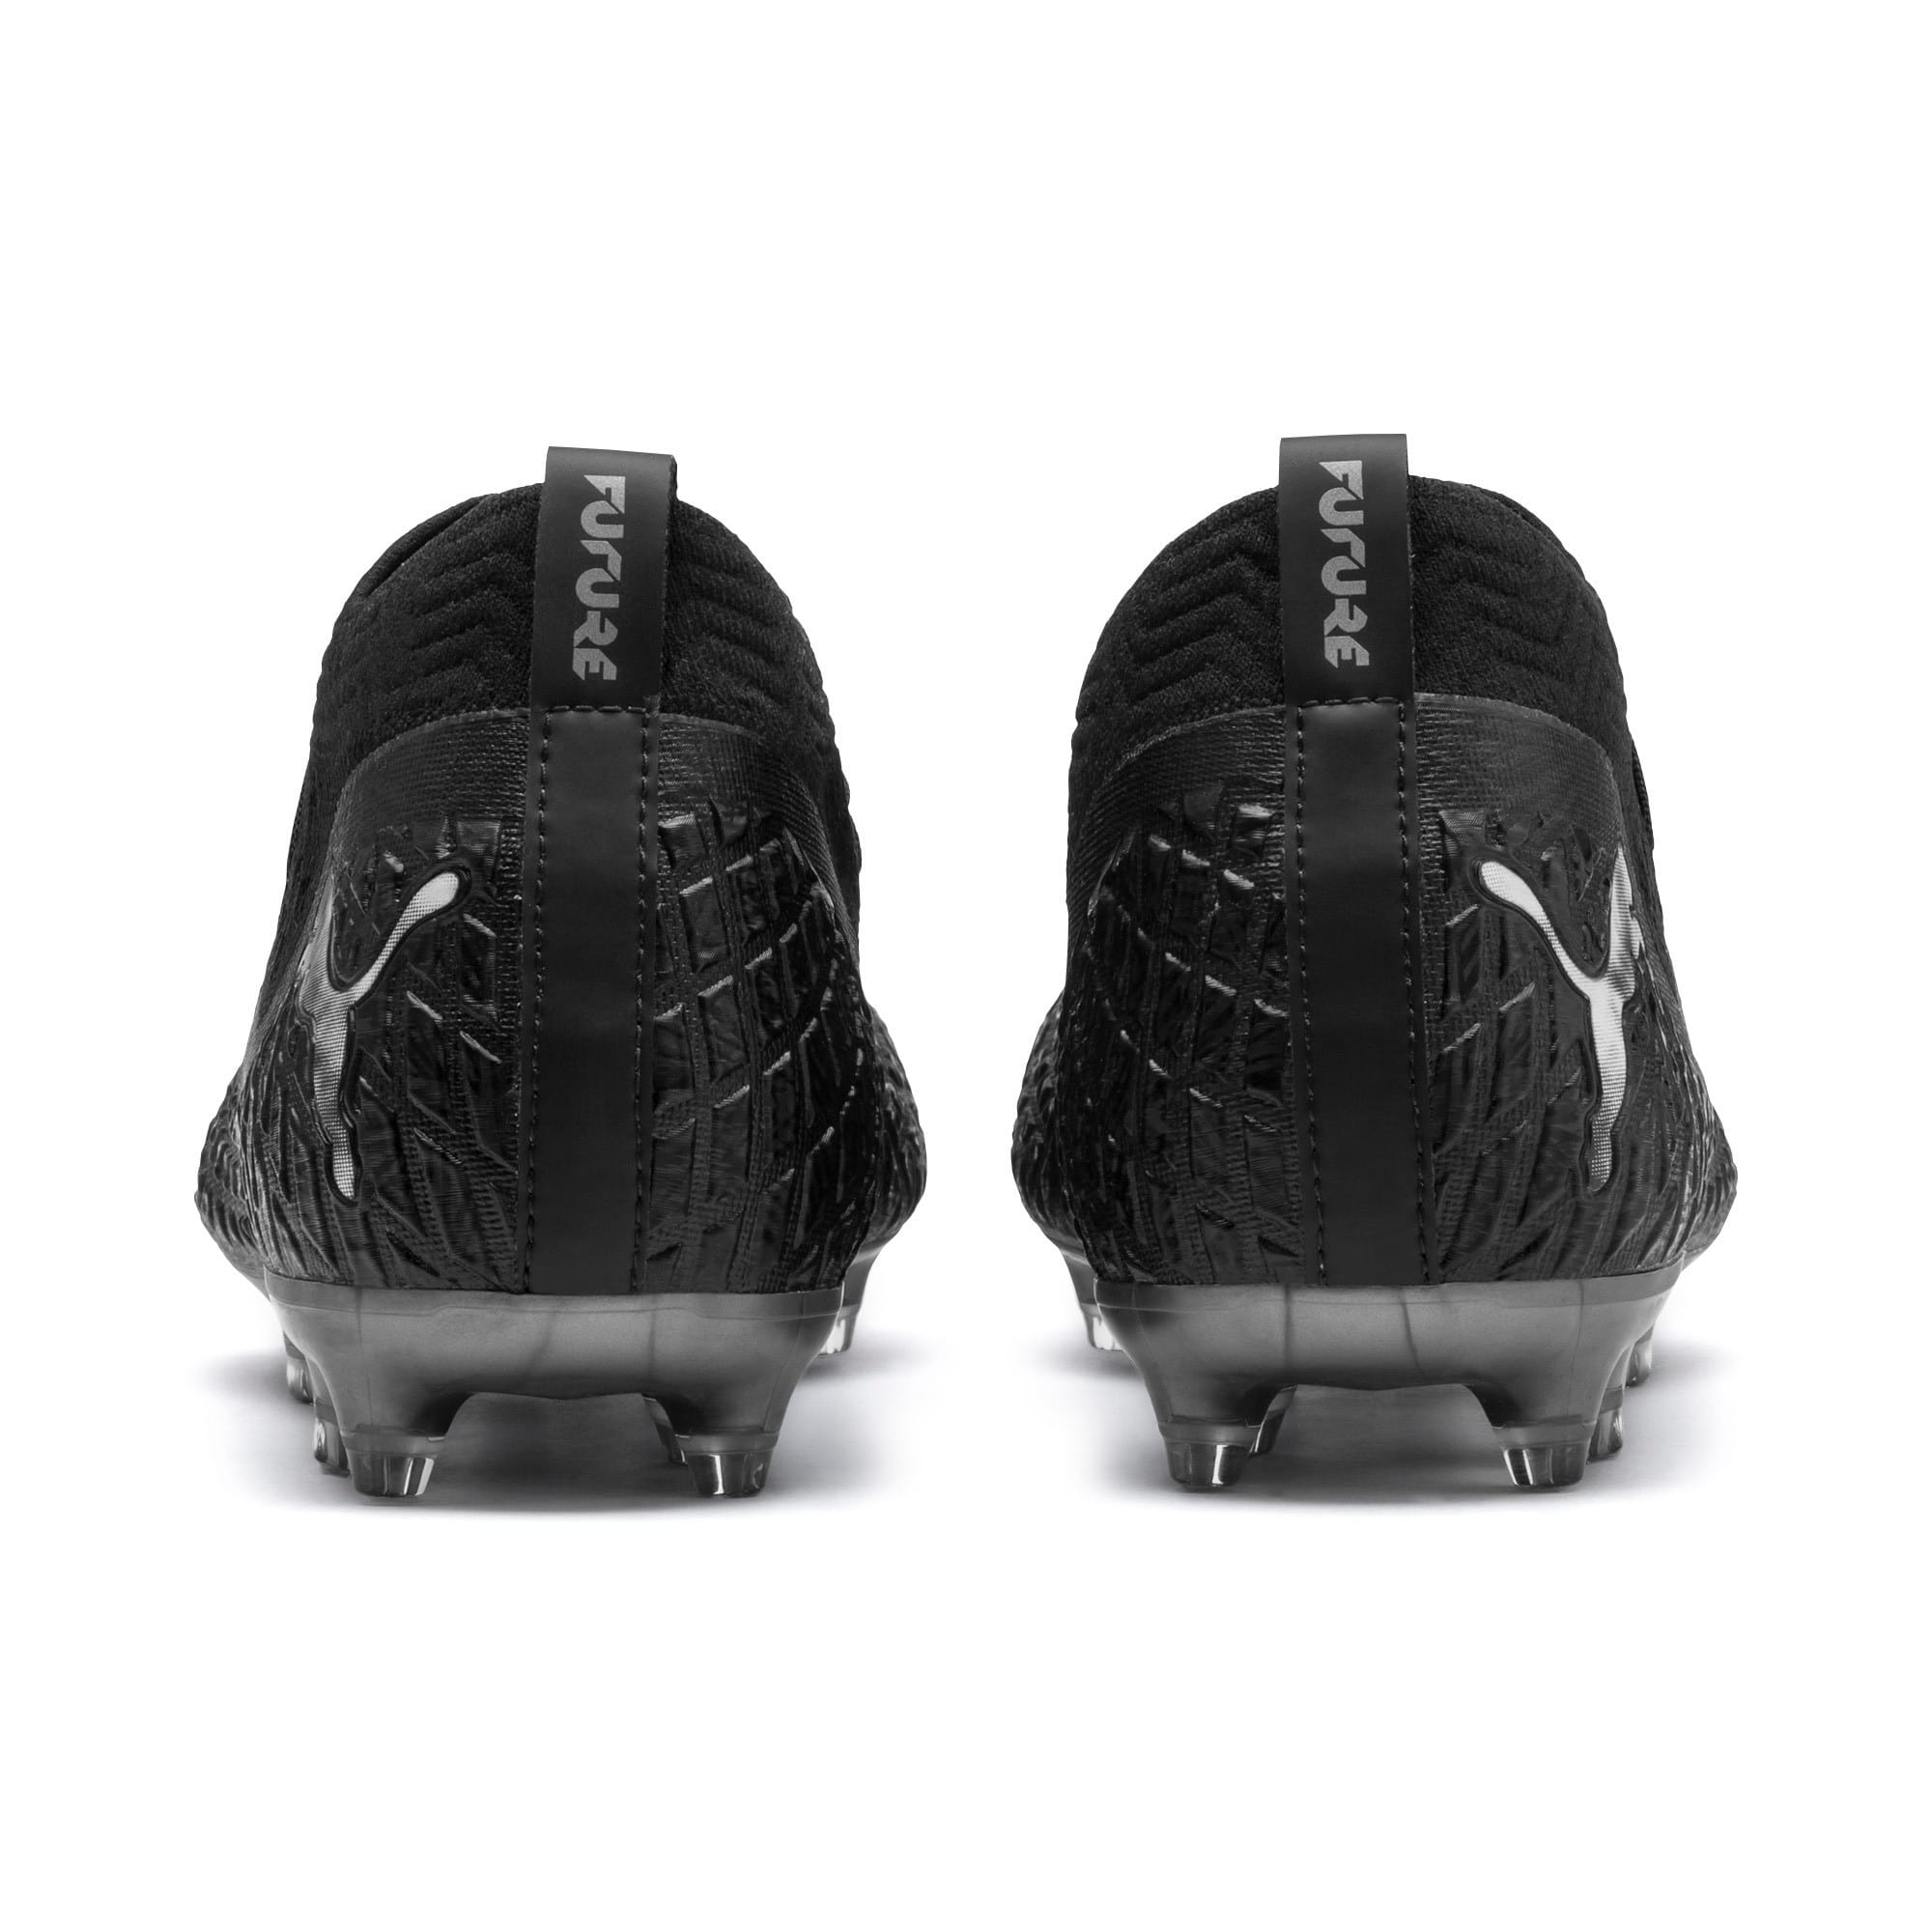 Thumbnail 4 of FUTURE 4.2 NETFIT FG/AG Men's Football Boots, Black-Black-Puma Aged Silver, medium